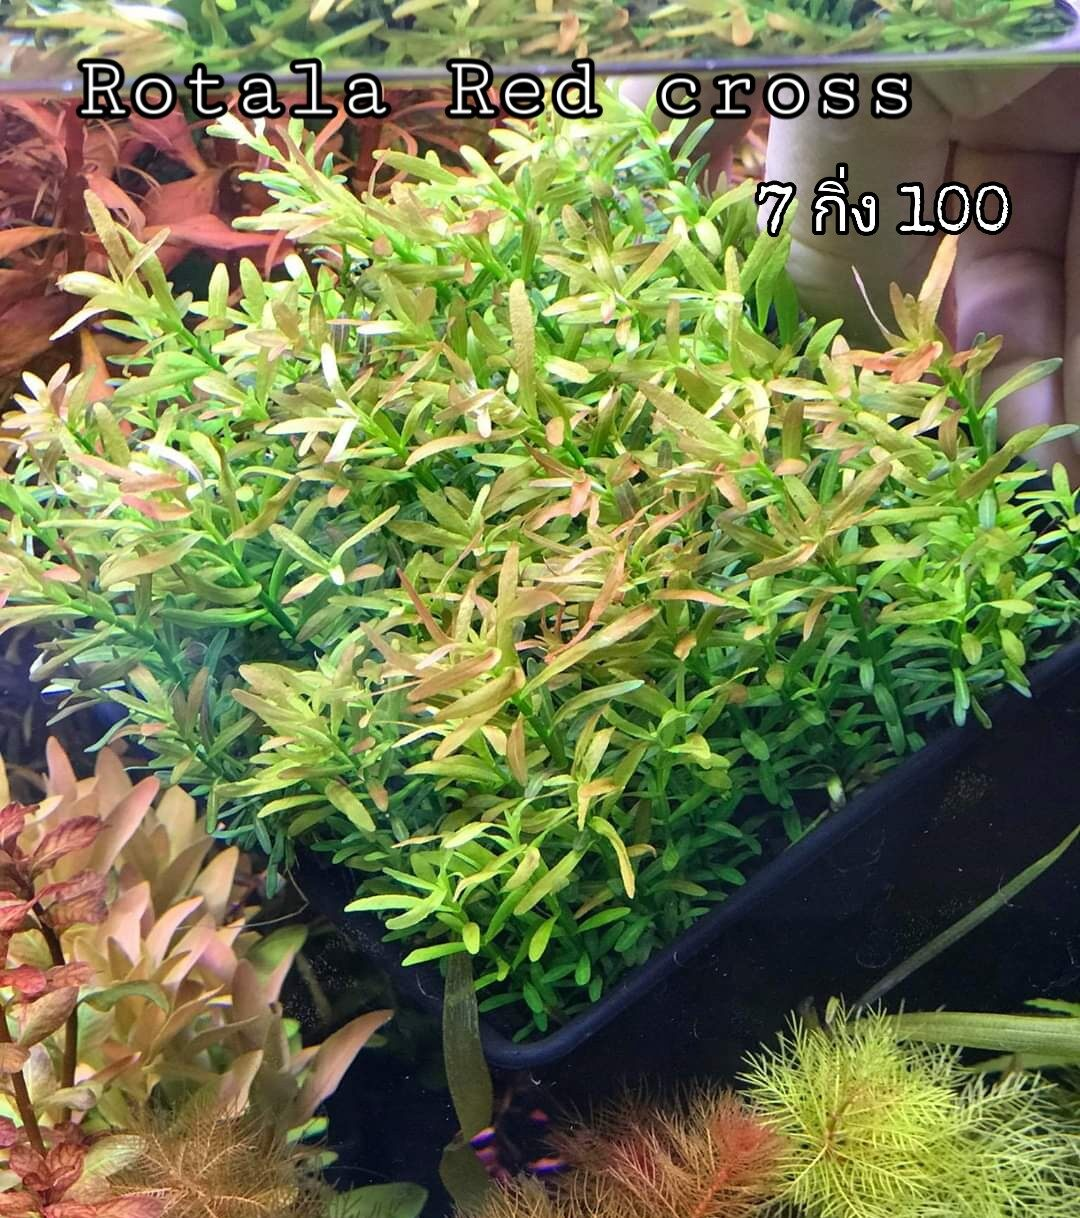 Rotala Red Cross